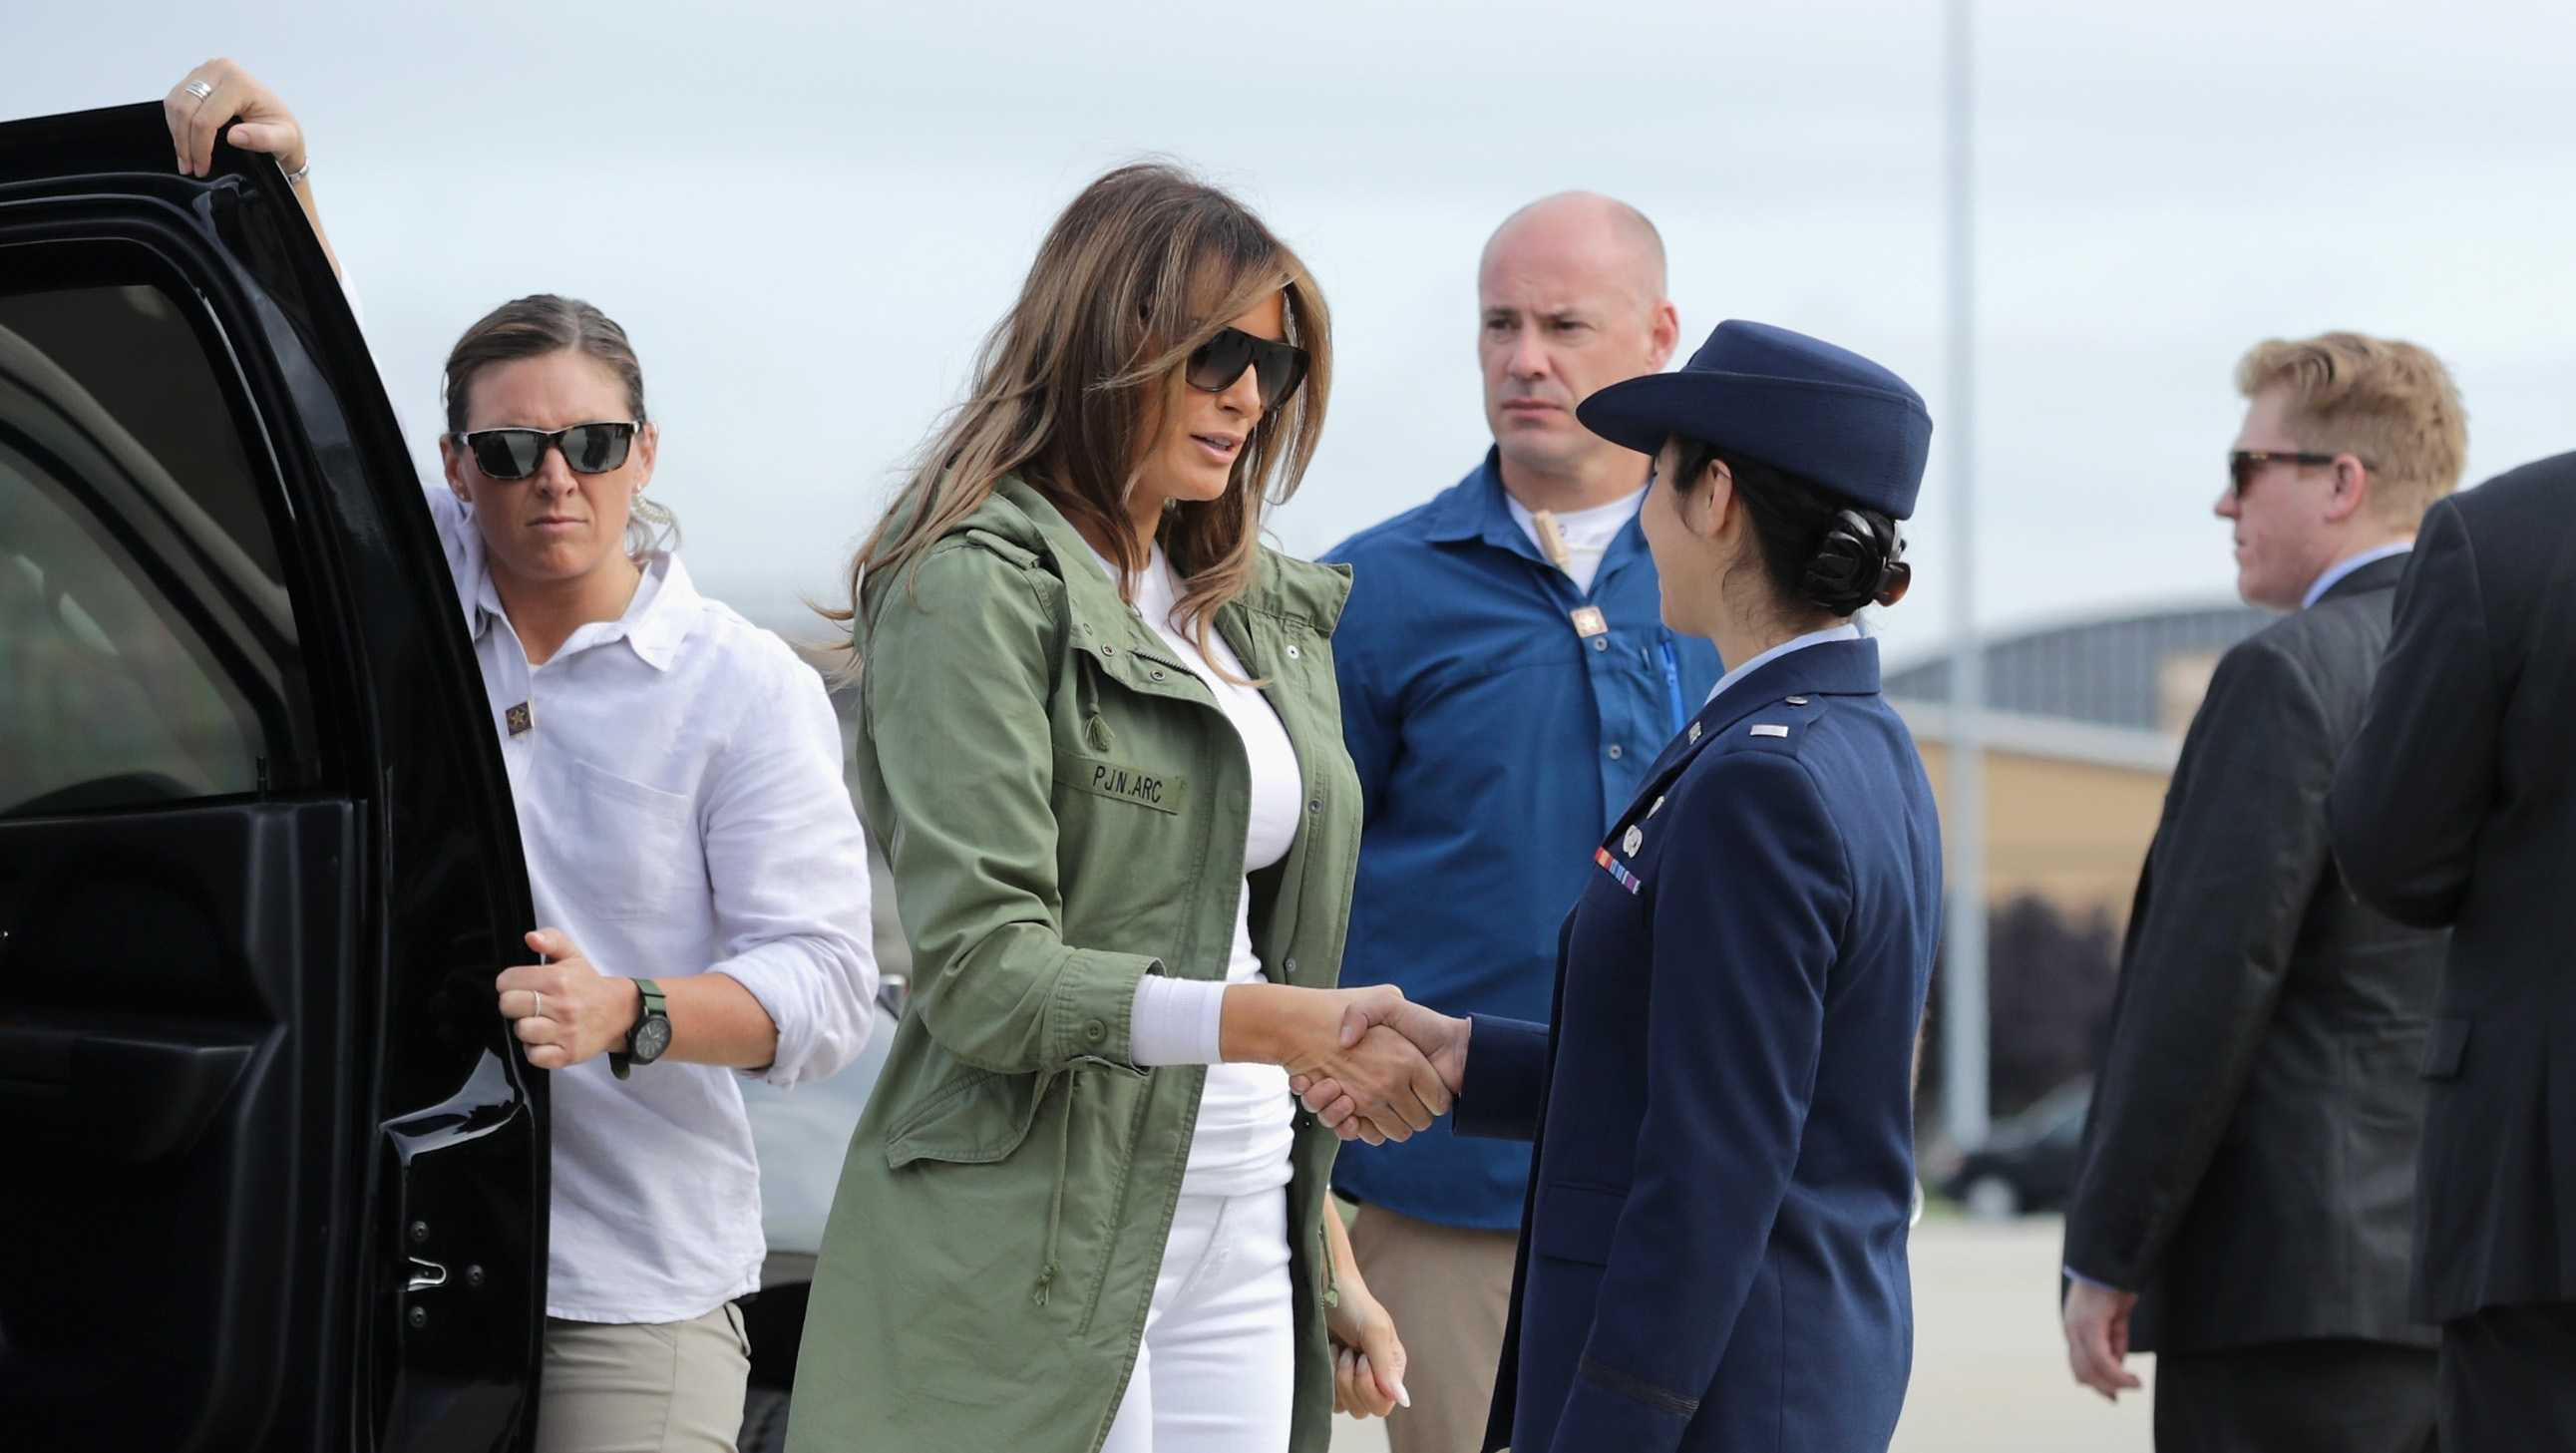 First Lady Melania Trump steps out of her motorcade before boarding an Air Force plane and traveling to Texas to visit facilities that house and care for children taken from their parents at the U.S.-Mexico border June 21, 2018 at Joint Base Andrews, Maryland.